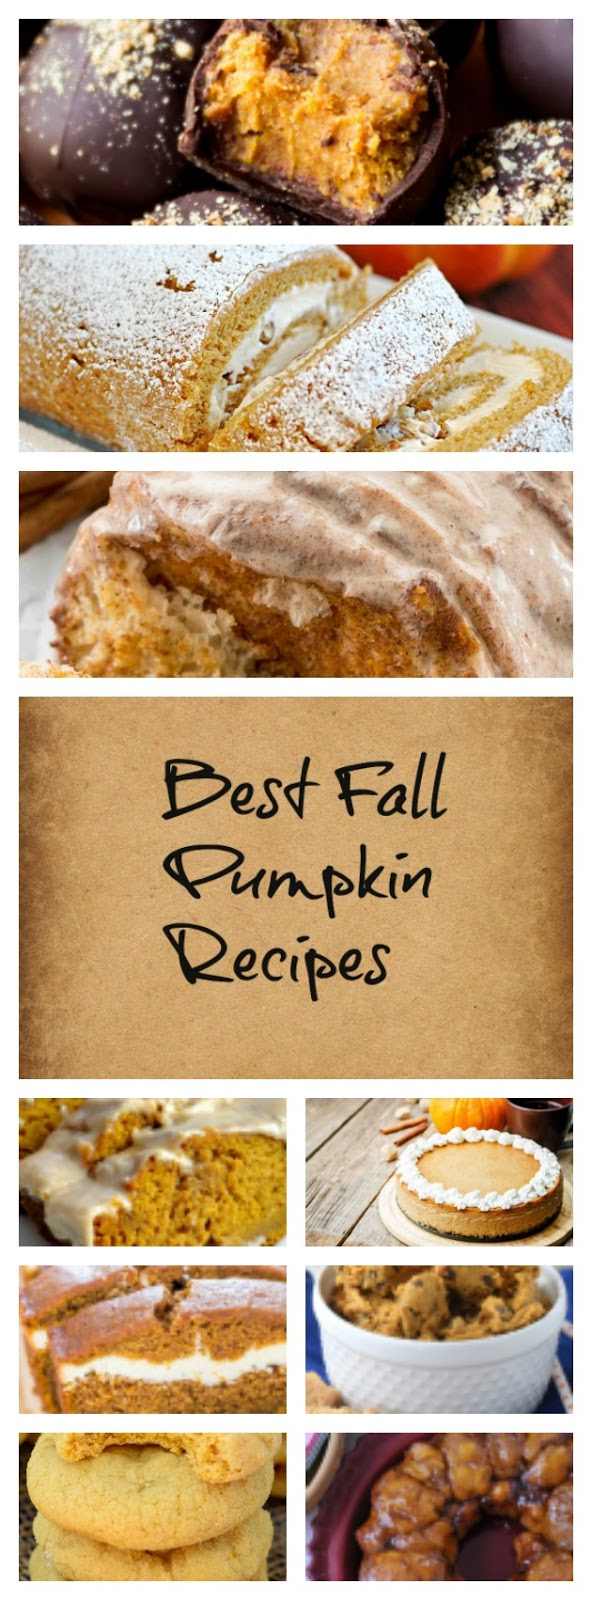 Enjoy these pumpkin recipes collected from Pinterest! Fall is only days away, and with fall comes those sweet, nutmegy, pumpkin flavored treats we all love. Good luck only making one of these delicious recipes!